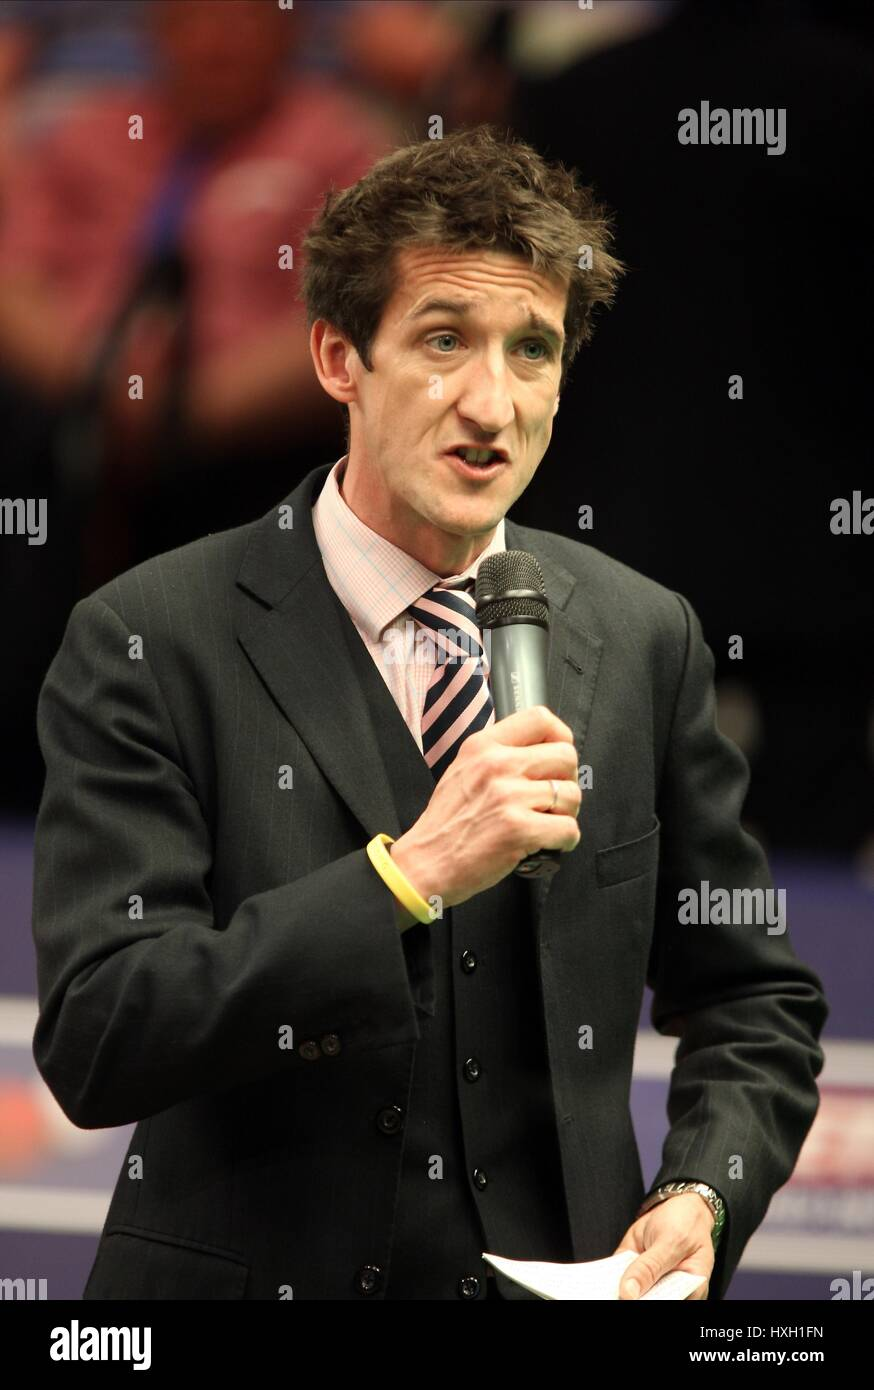 ROB WALKER MASTER OF CEREMONIES/ANNOUNCER THE CRUCIBLE SHEFFIELD ENGLAND 20 April 2009 - Stock Image